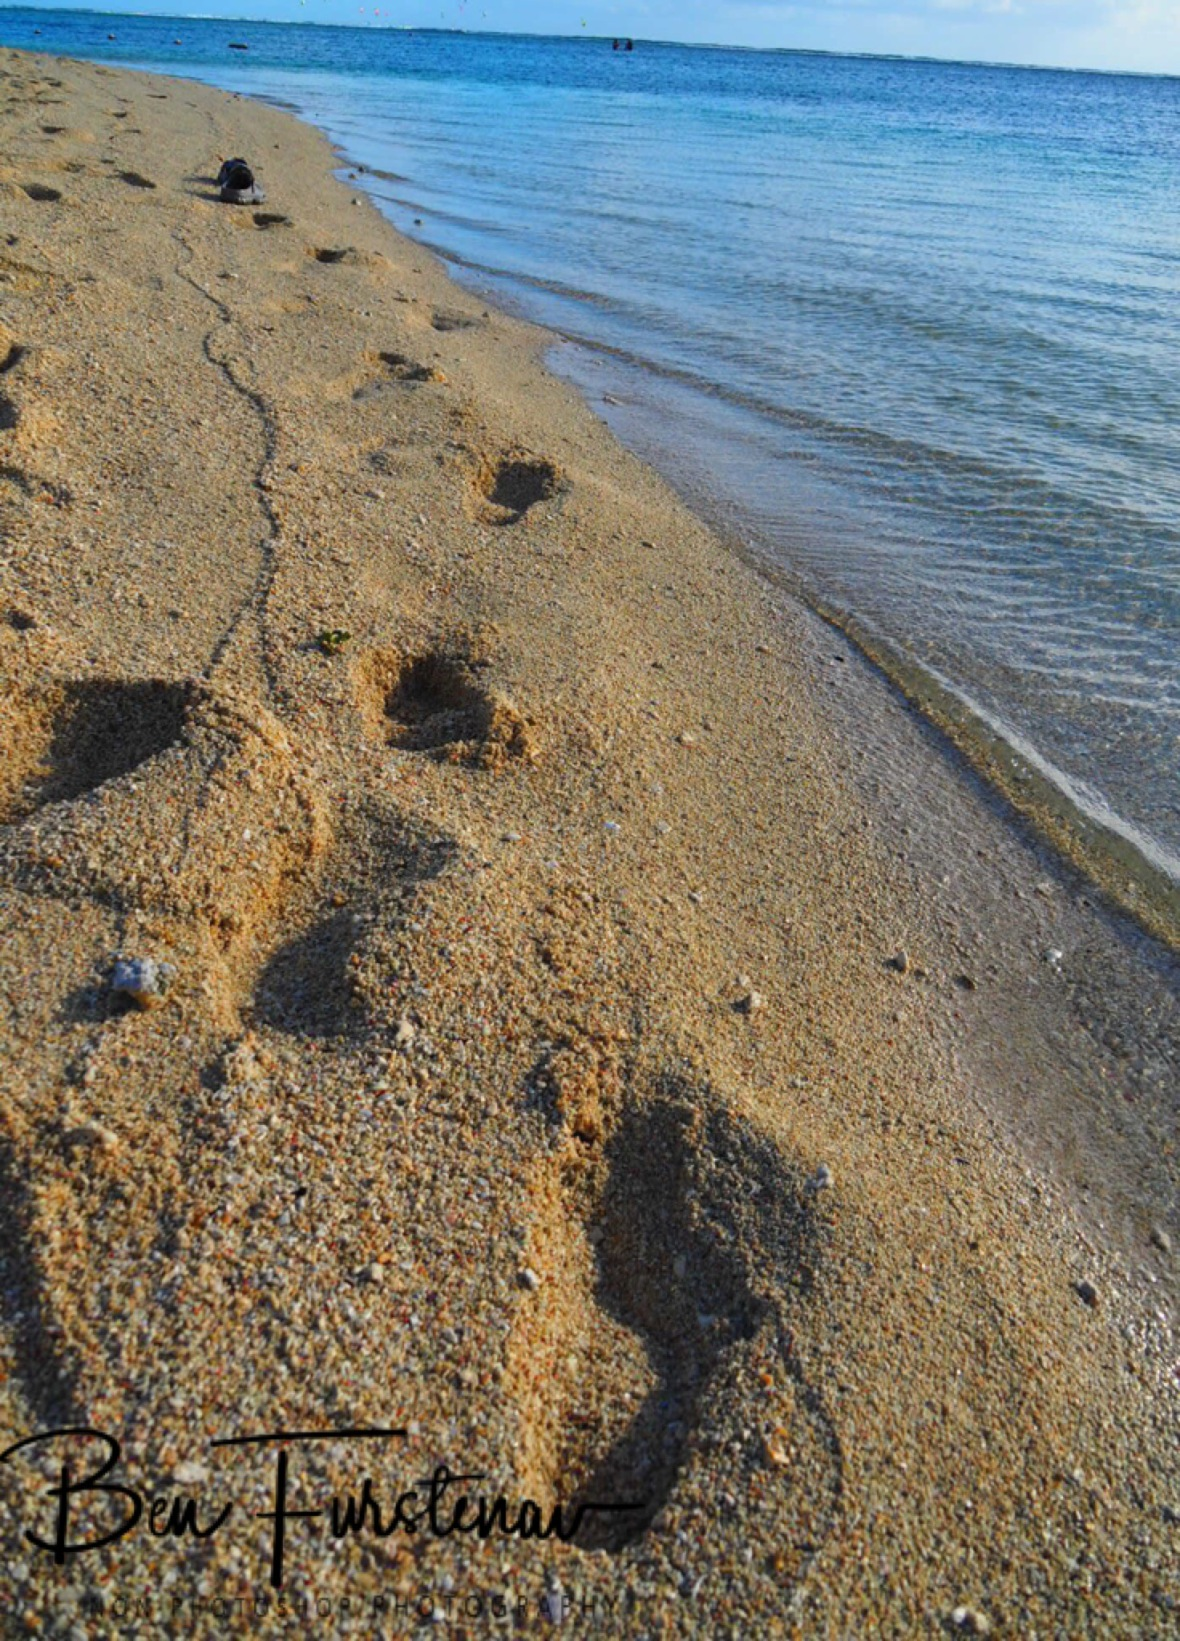 Footprints on the beach, West Coast, Mauritius